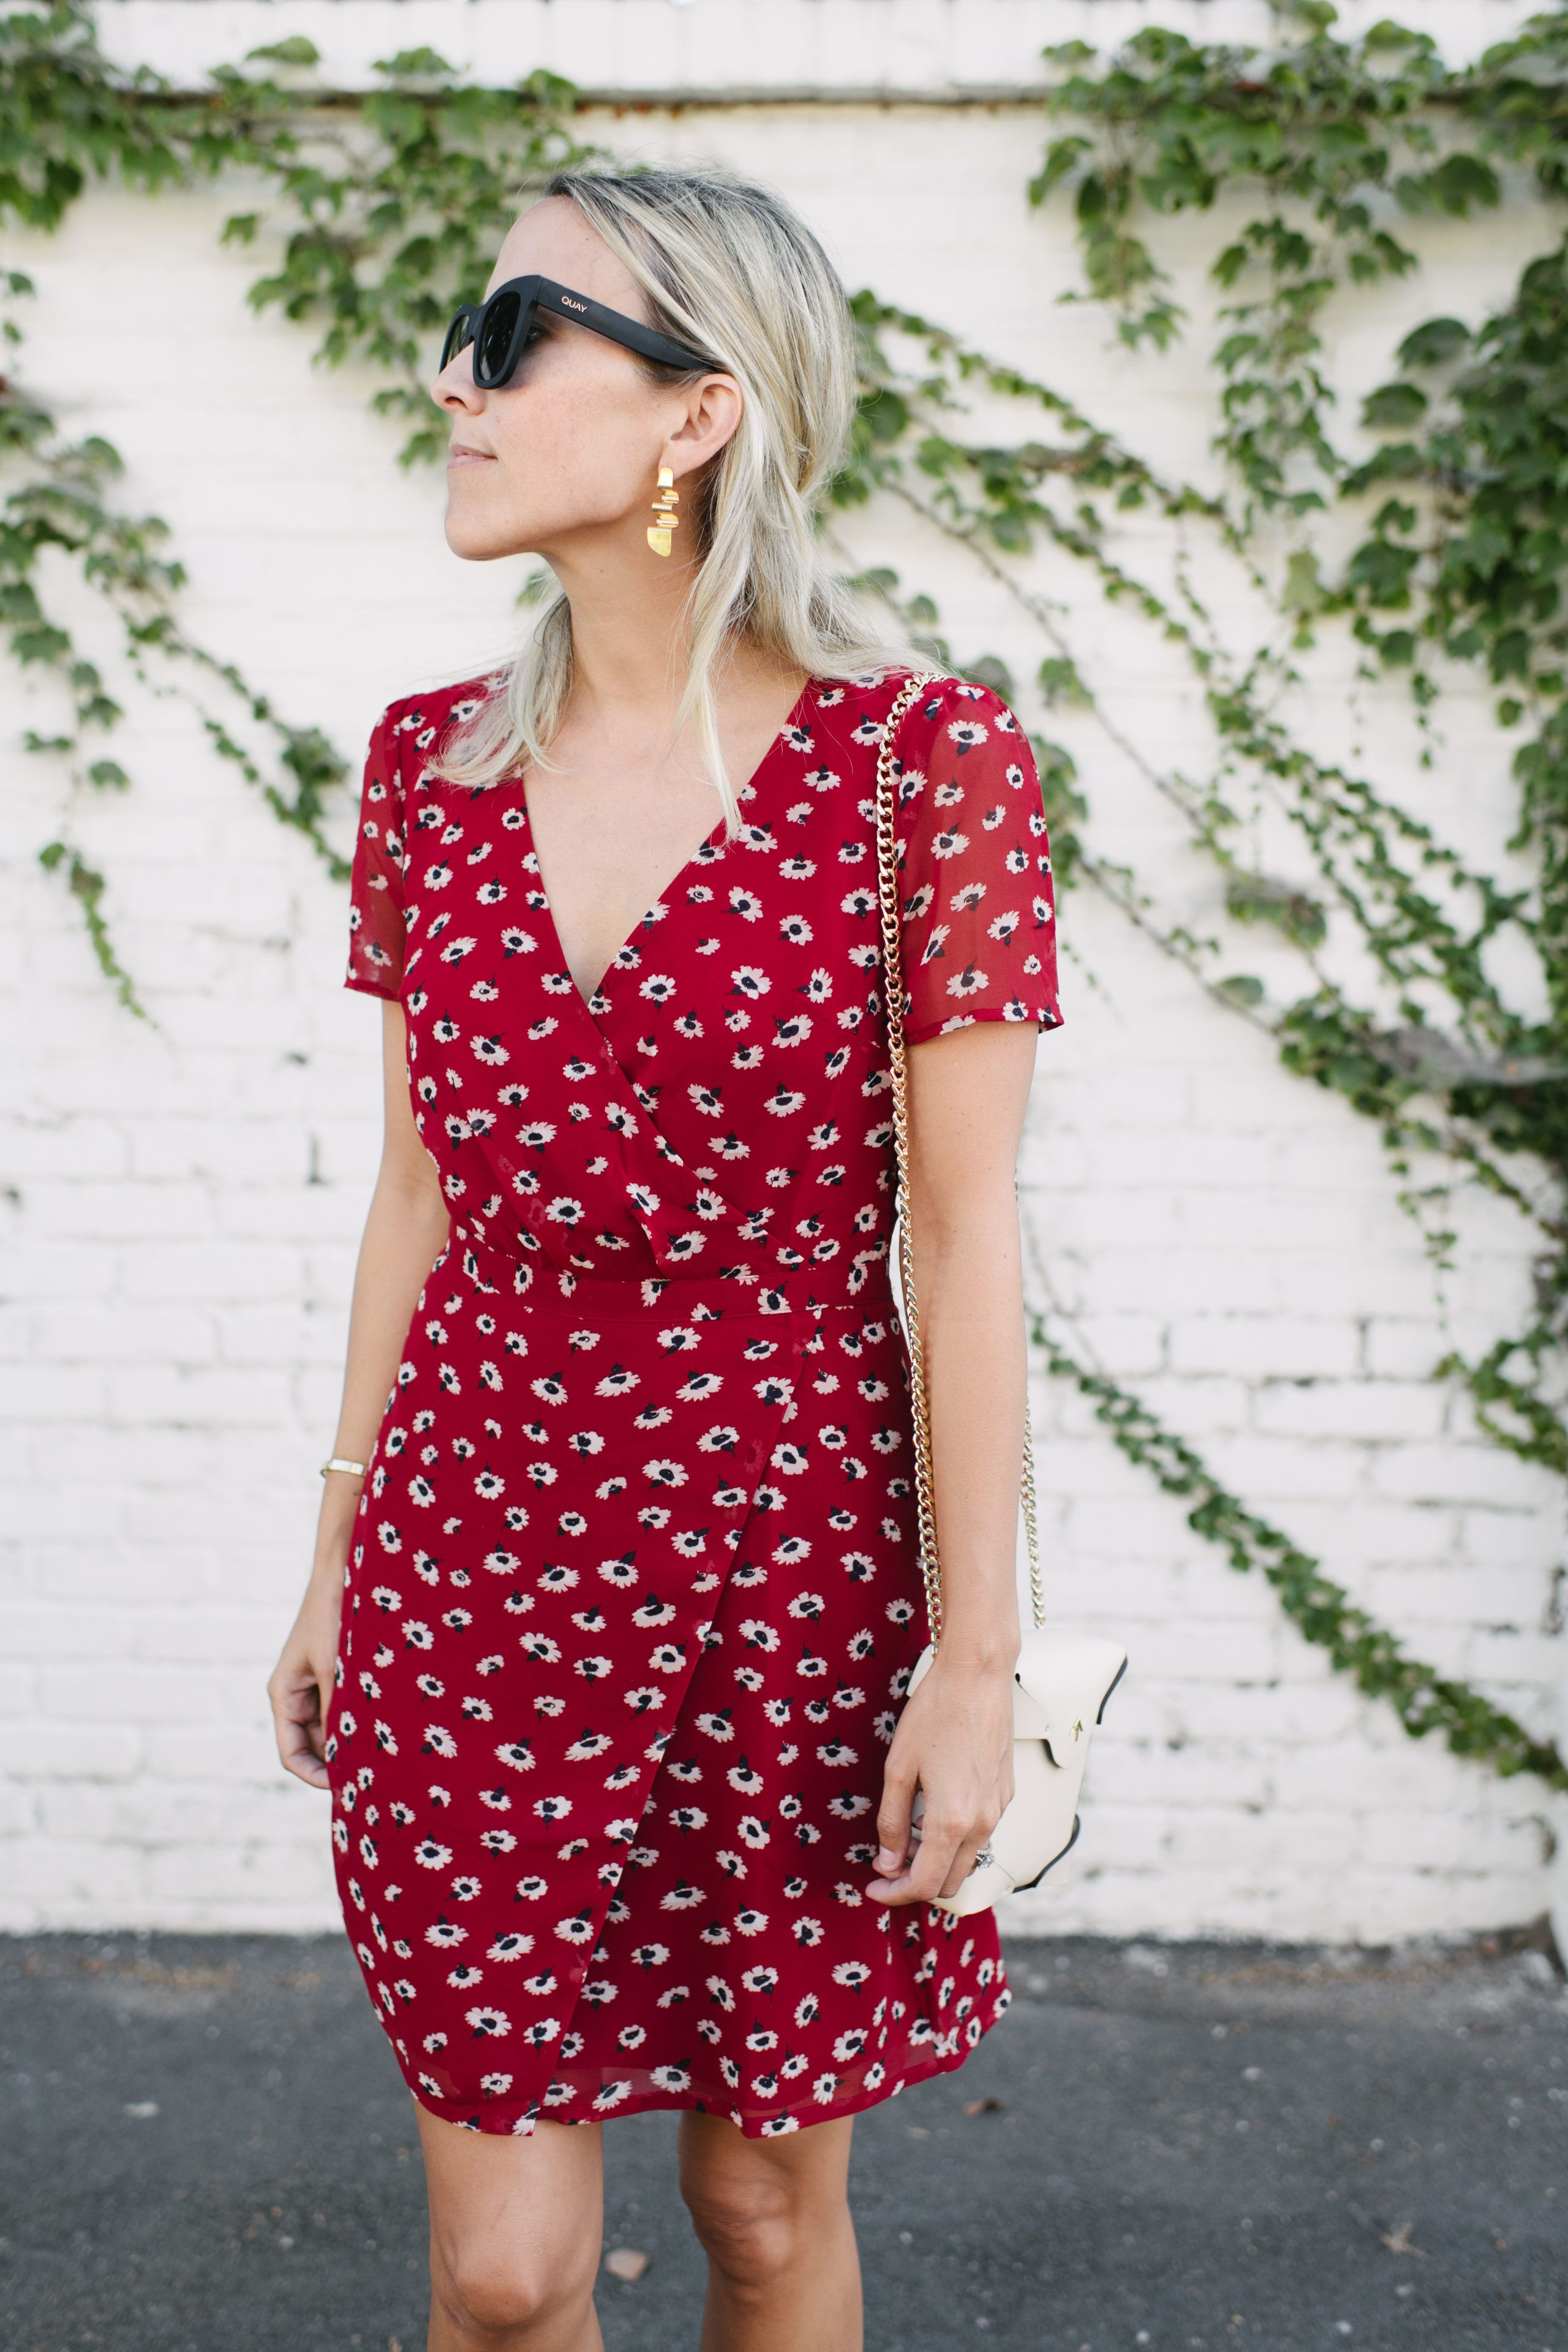 Red Floral Dress In August Damsel In Dior Floral Dress Casual Floral Outfit Summer Floral Dress Outfit Summer